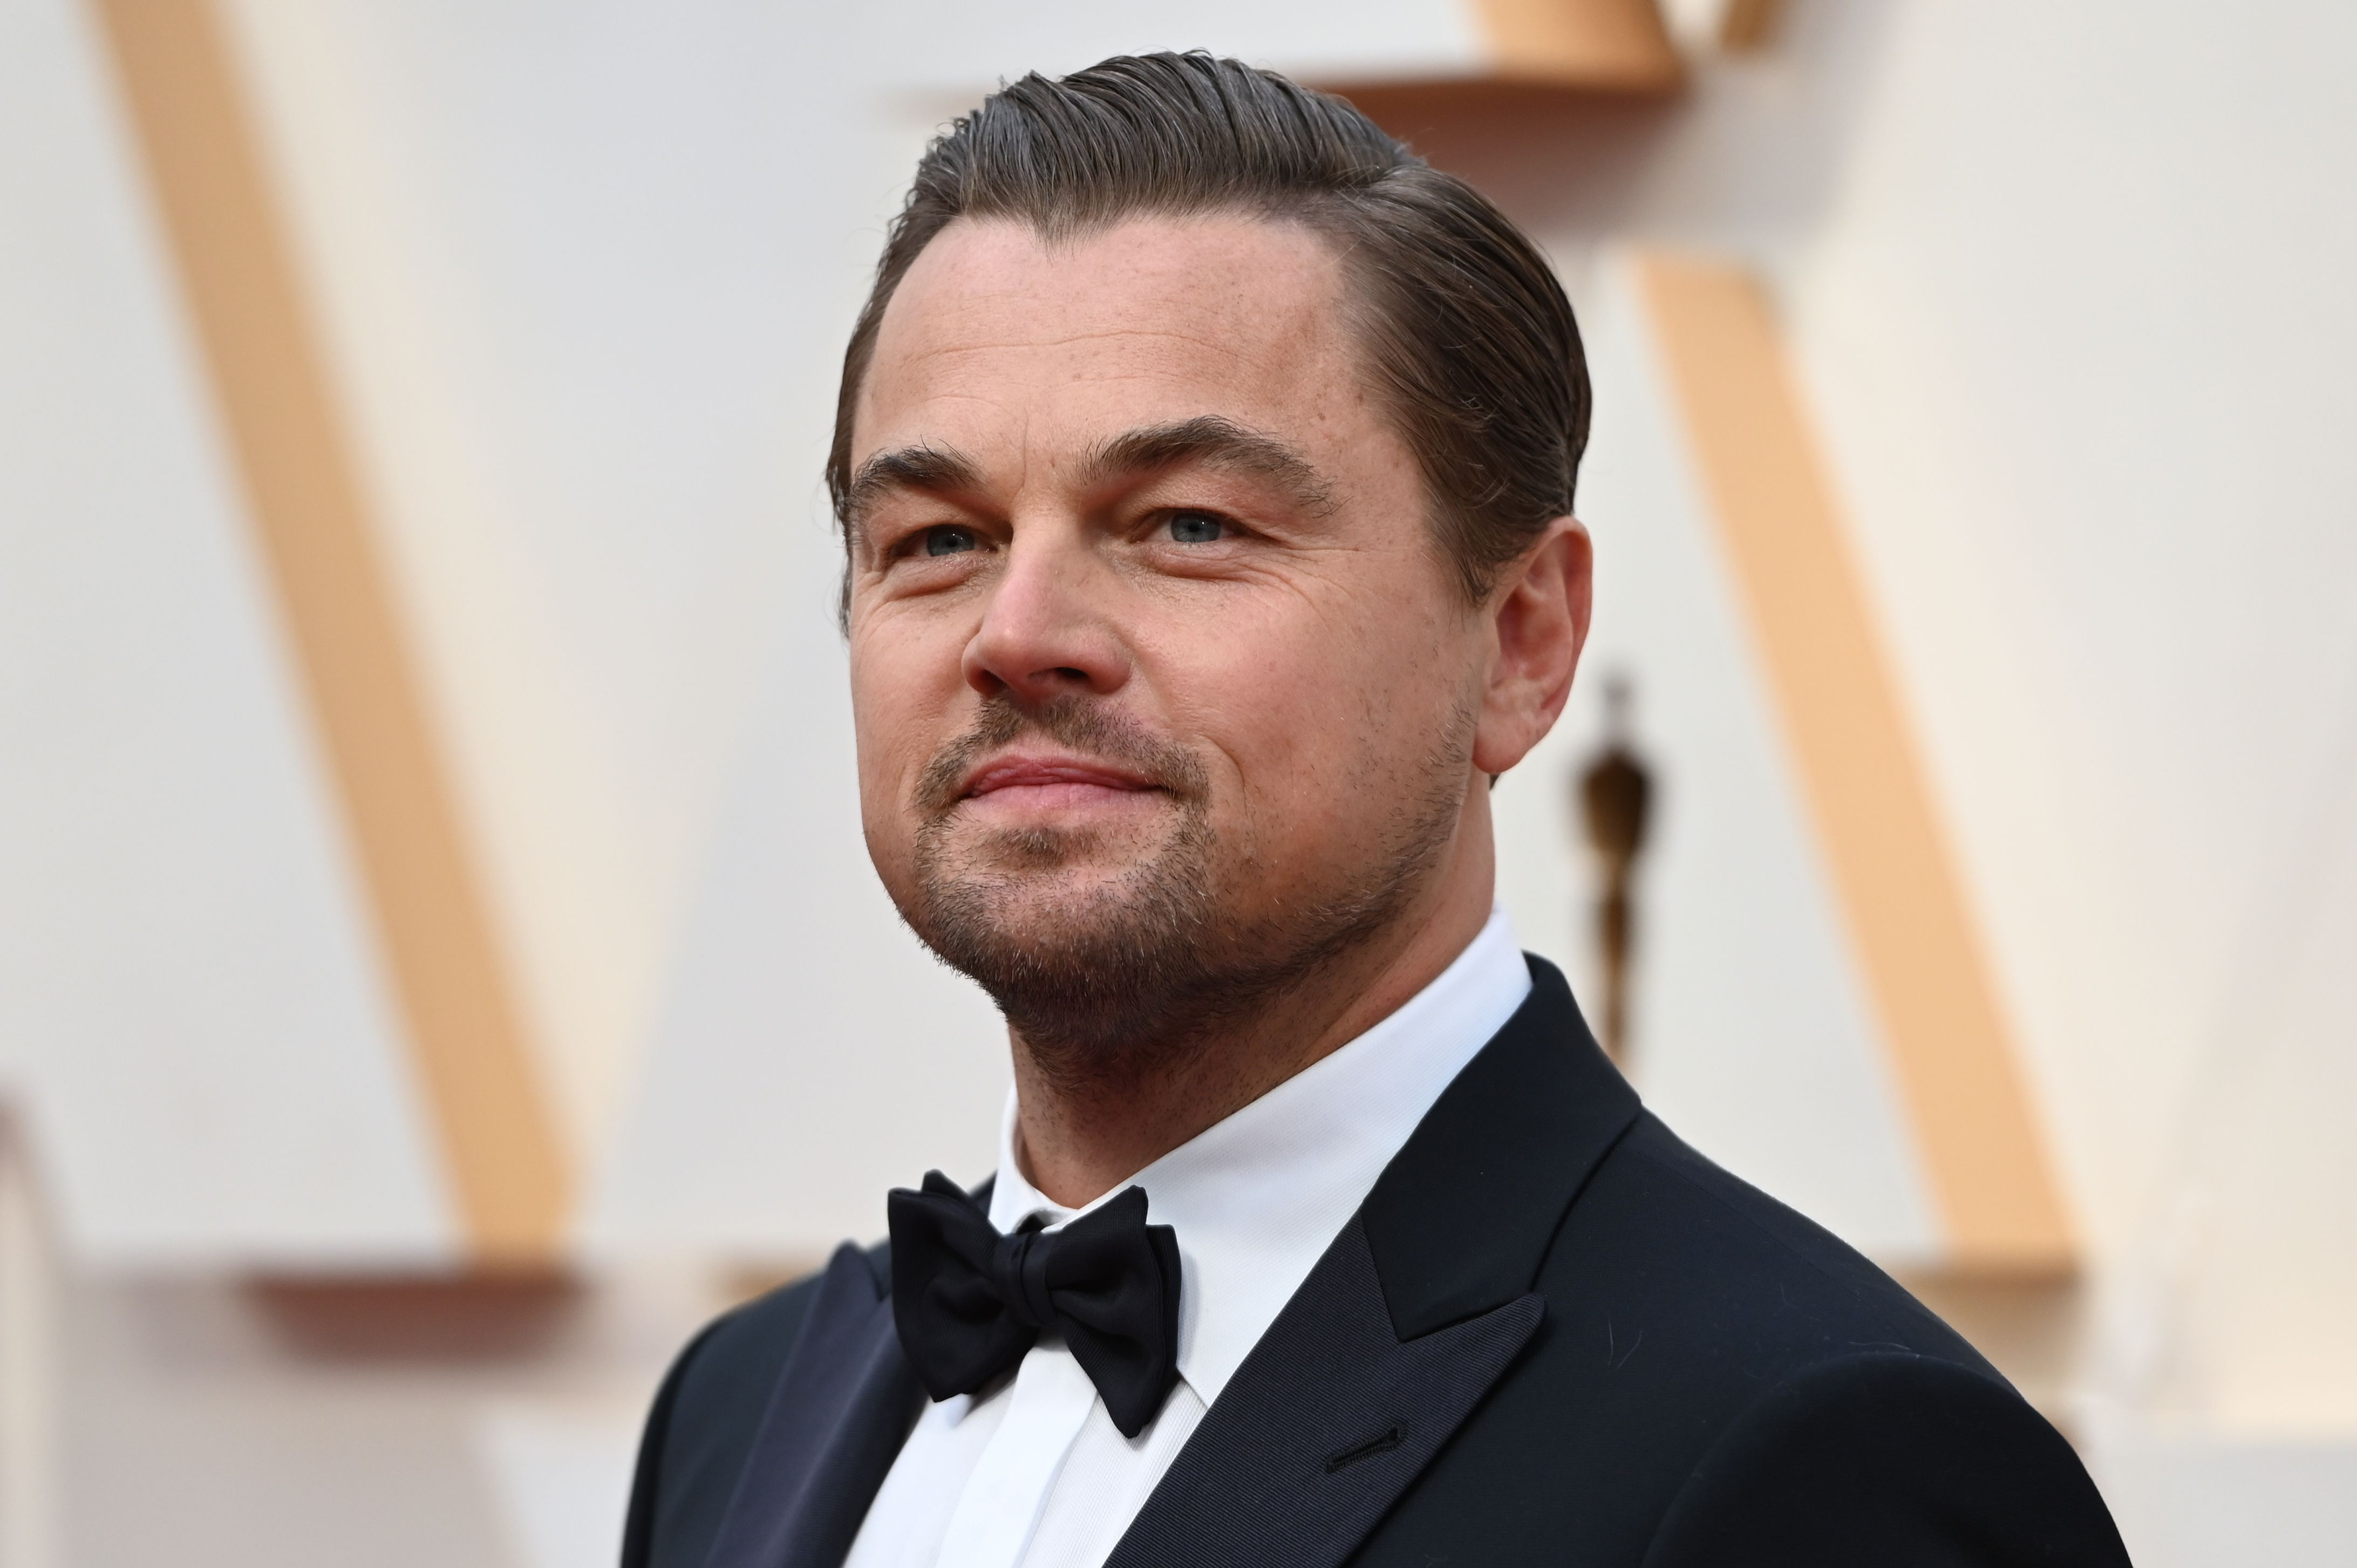 Leonardo DiCaprio grinning while at the Academy Awards.